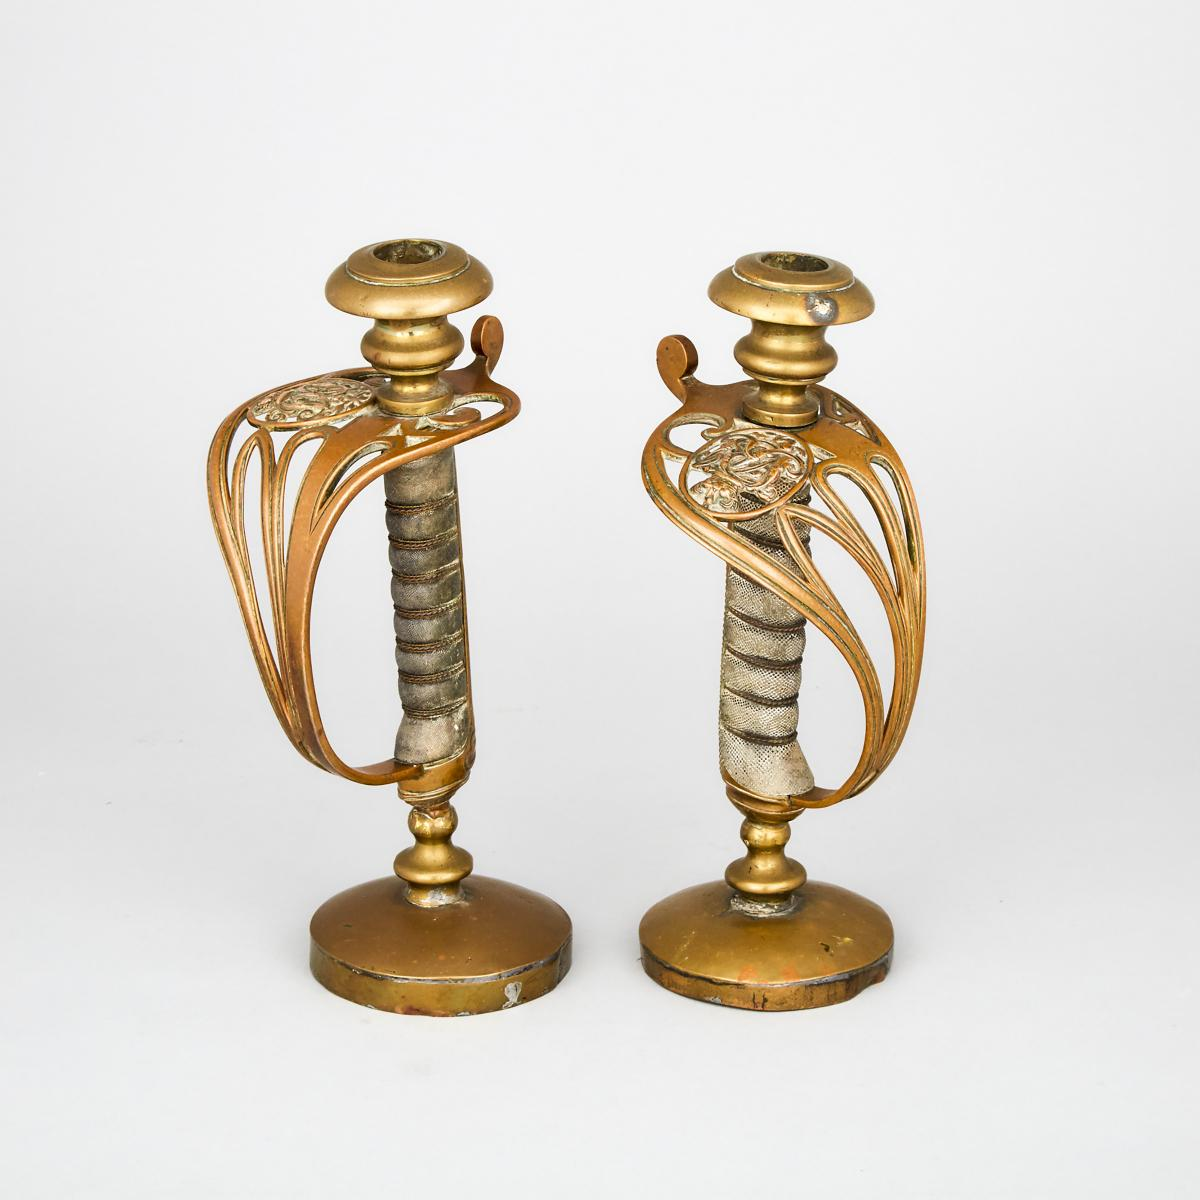 Pair of Victorian 1822 Pattern Sword Hilt Candlesticks, 19th century, height 10.25 in — 26 cm